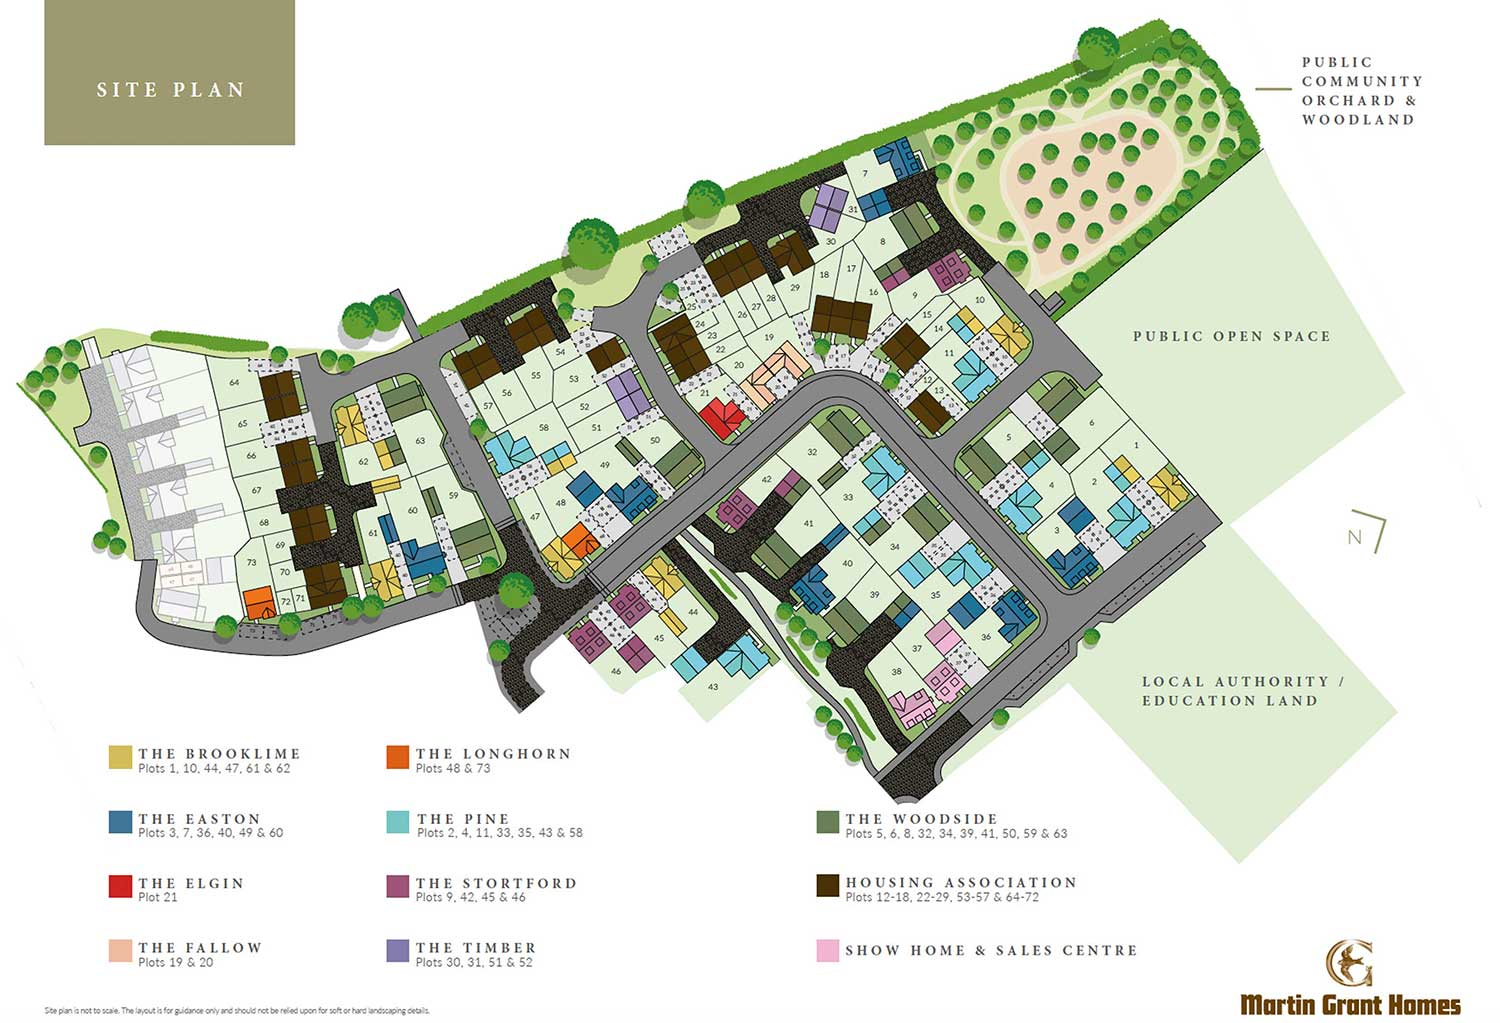 Sales Centre Now Open Daily at Walpole Meadows! Siteplan